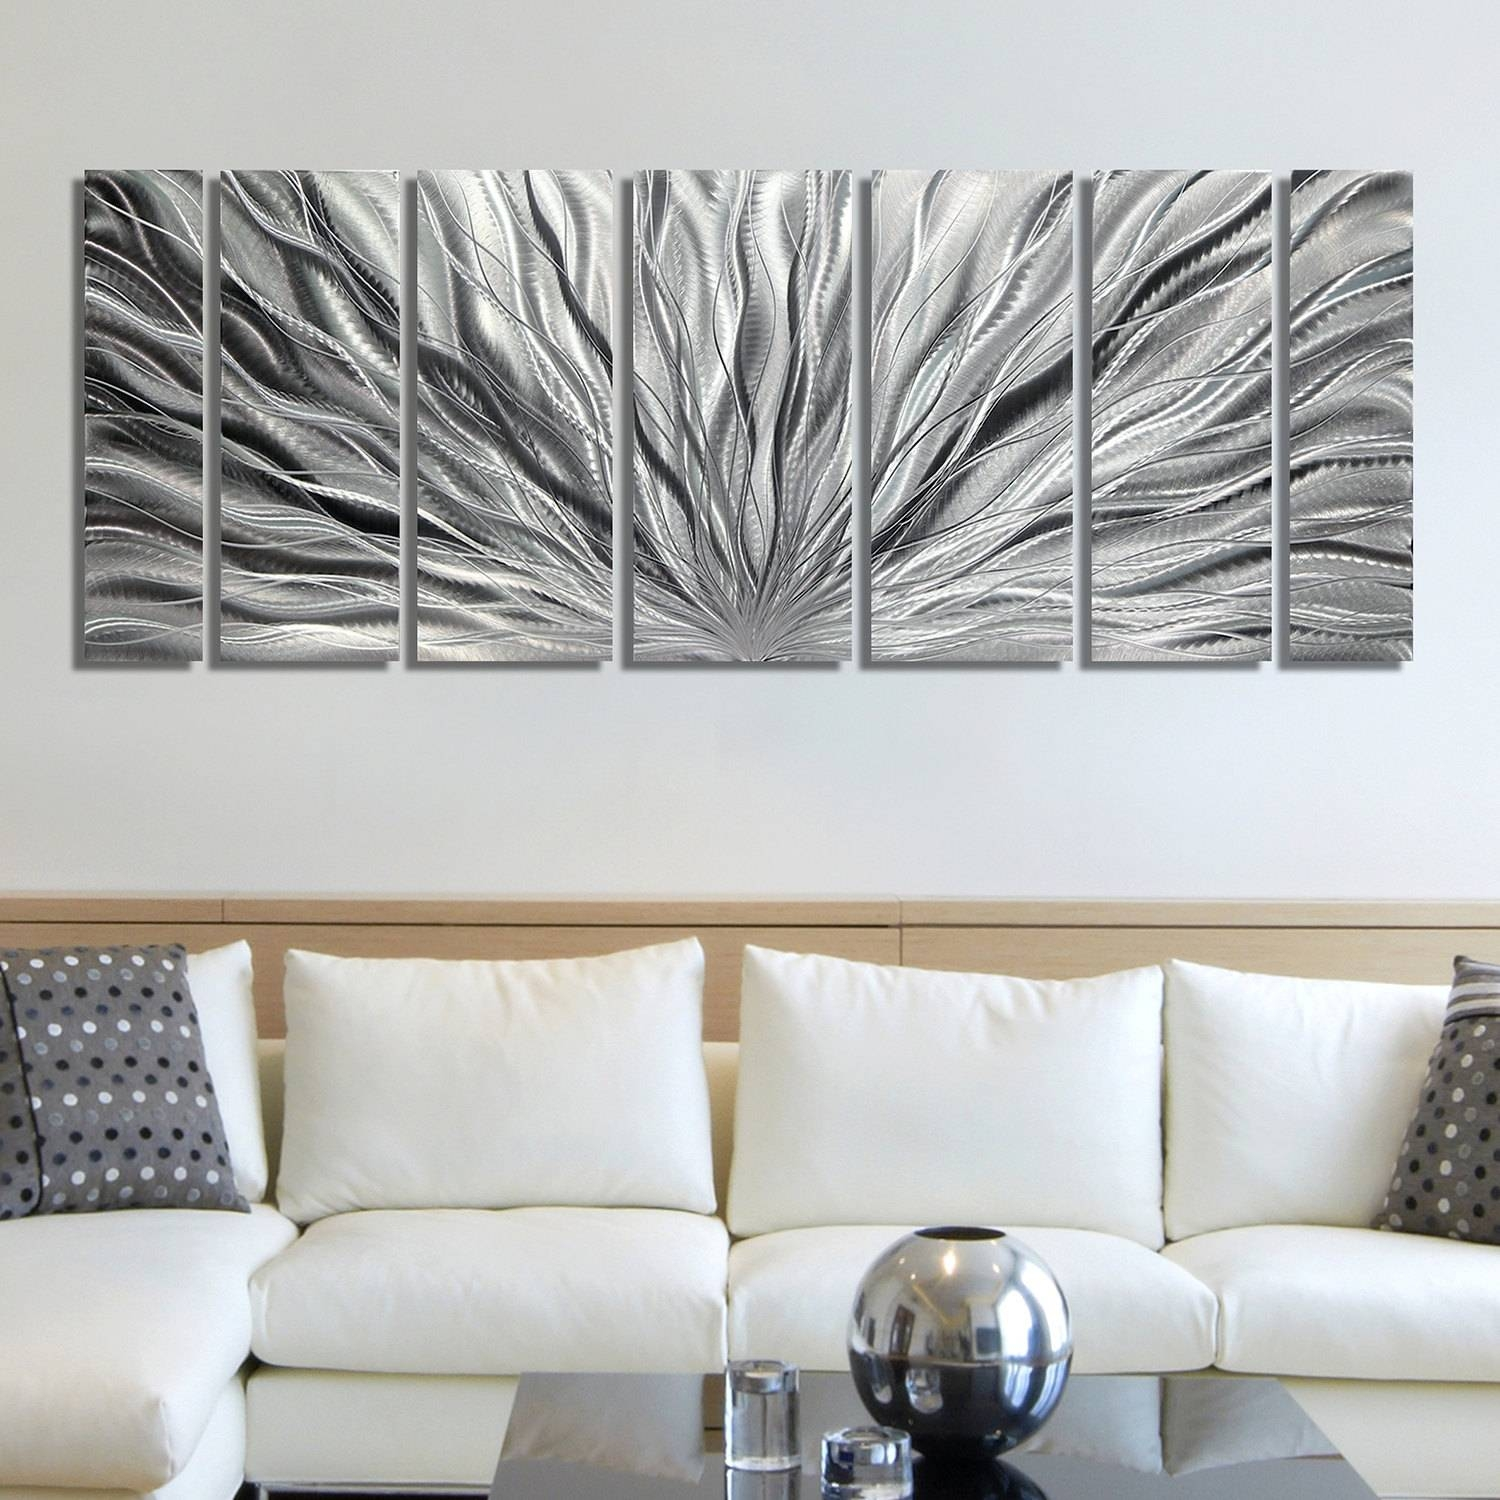 Sale Large Multi Panel Metal Wall Art In All Silver In Most Recent Large Metal Wall Art Sculptures (View 16 of 20)